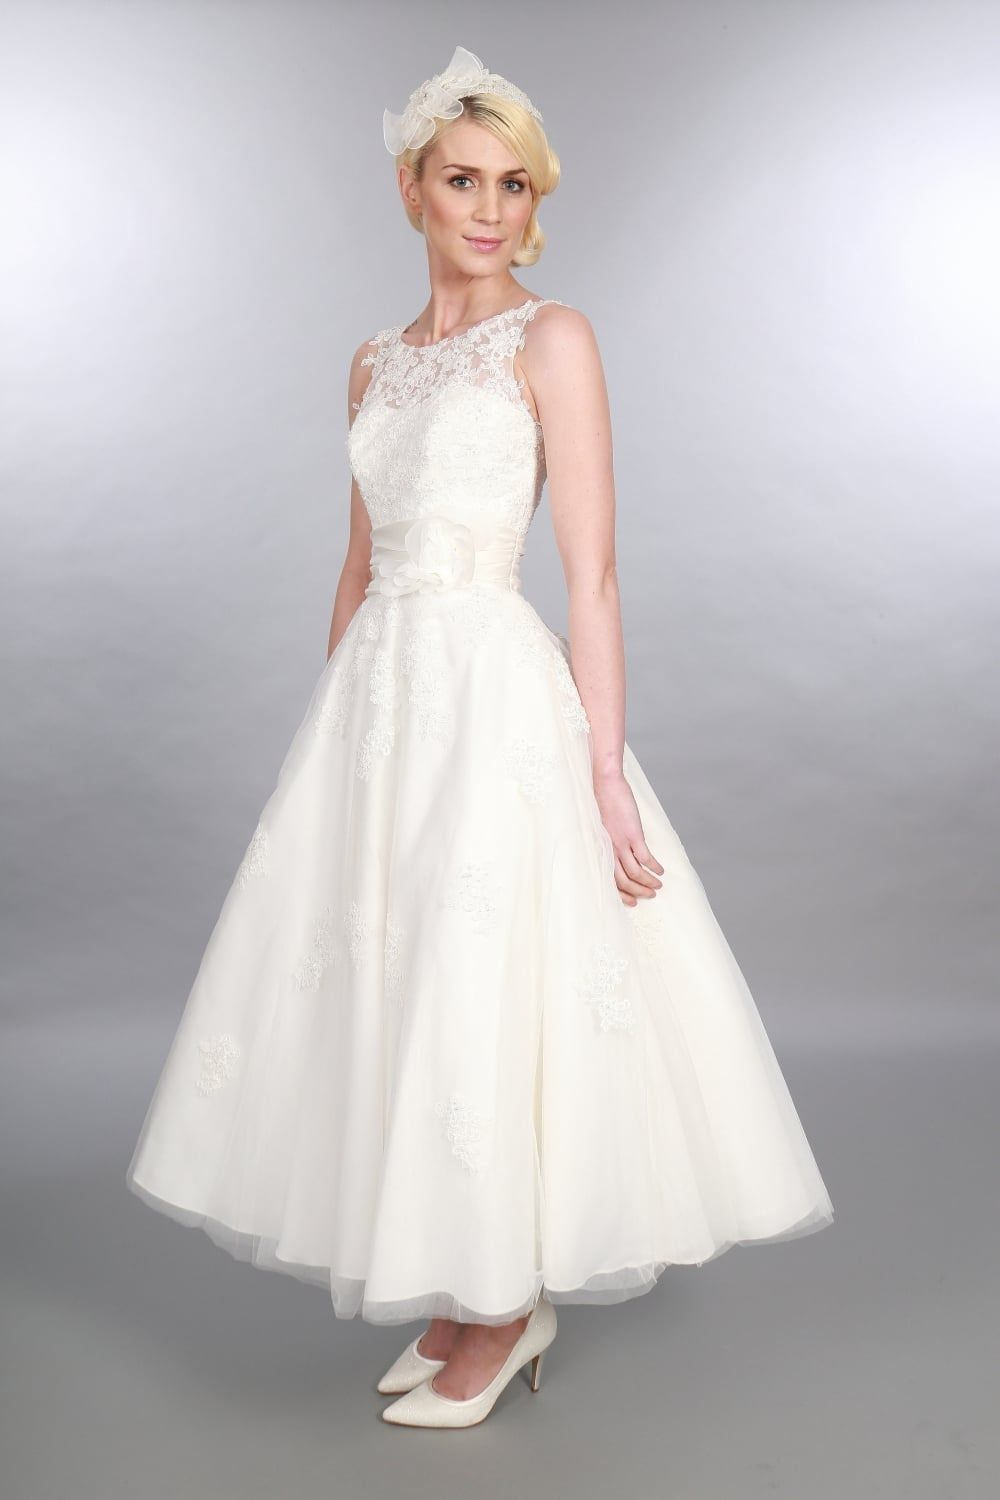 50+ Ankle Length Wedding Dress - Country Dresses for Weddings Check ...